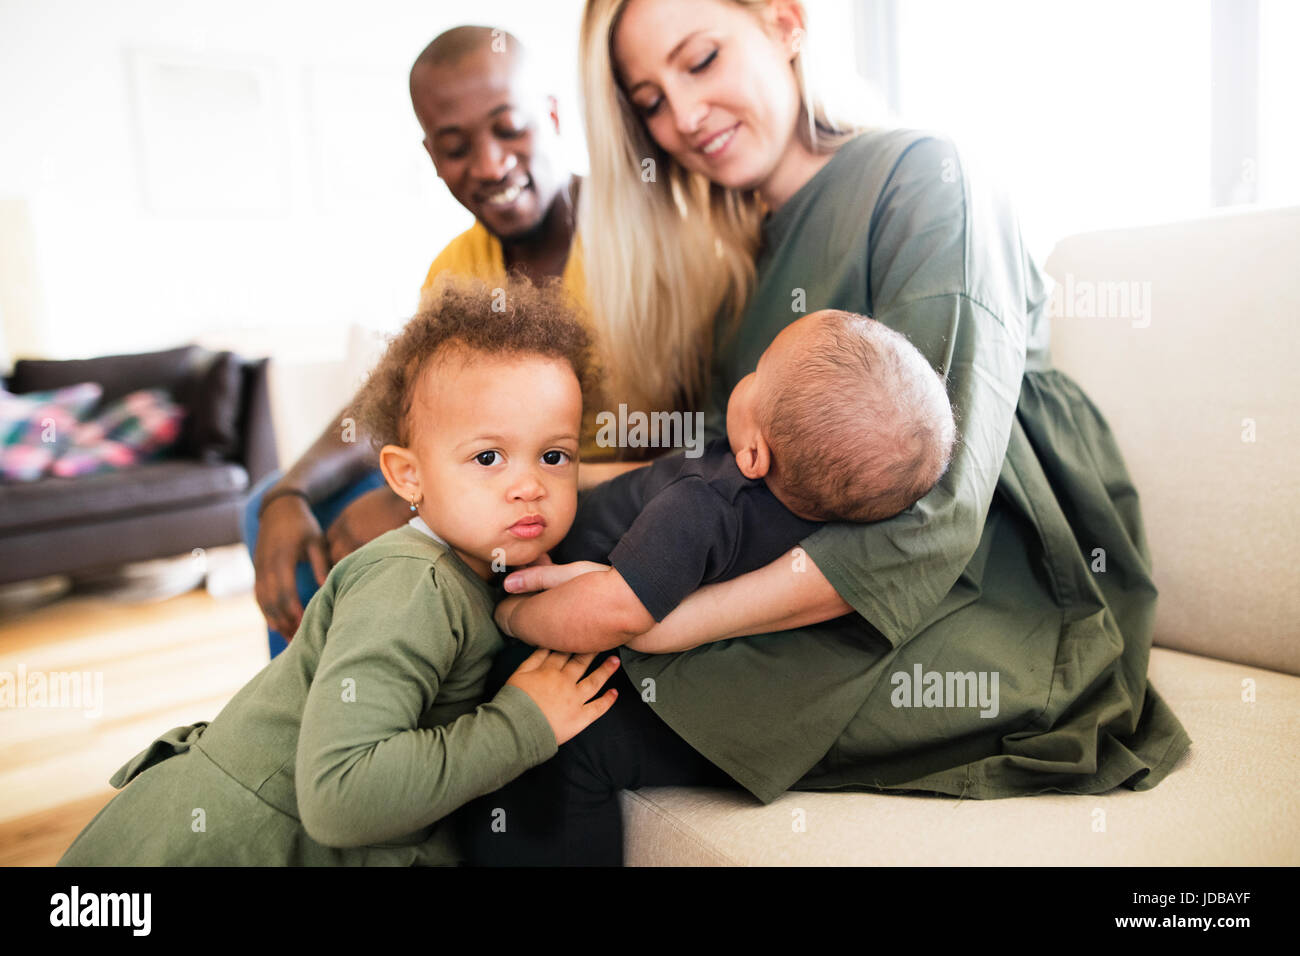 Interracial rencontres famille raciste